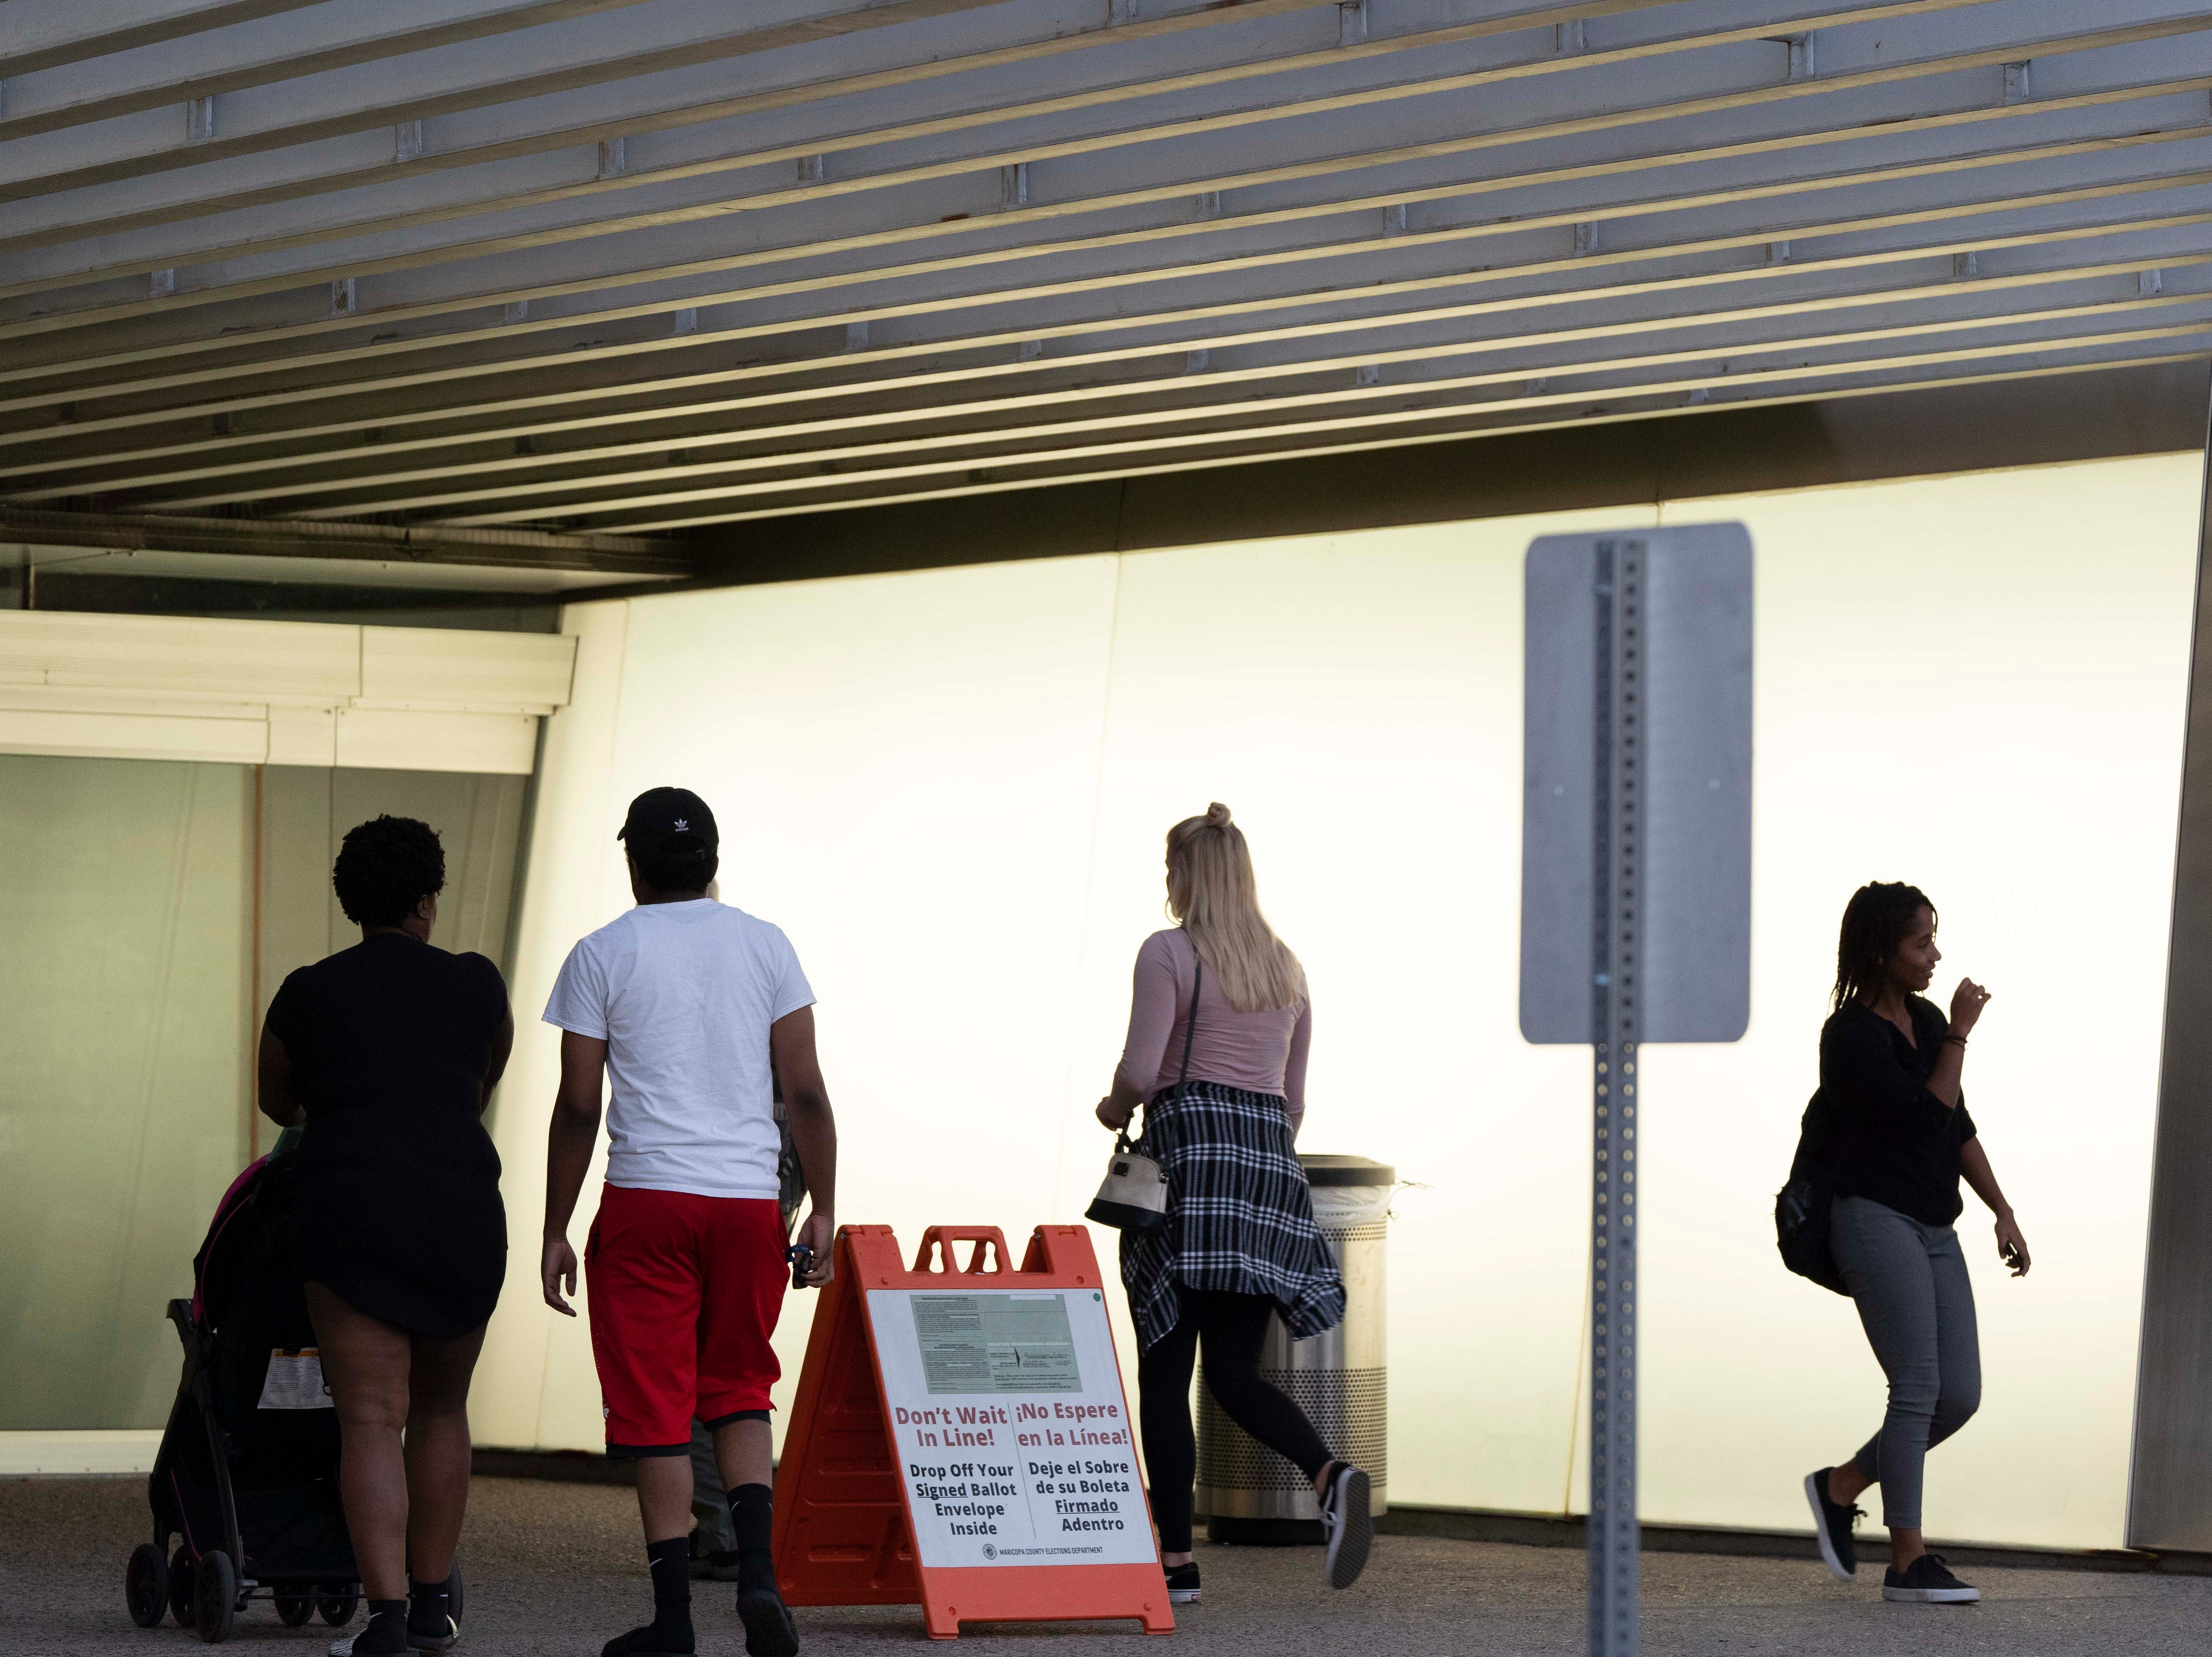 Arizona voters cast their ballots at Burton Barr Central Library polling place on Nov. 6, 2018.